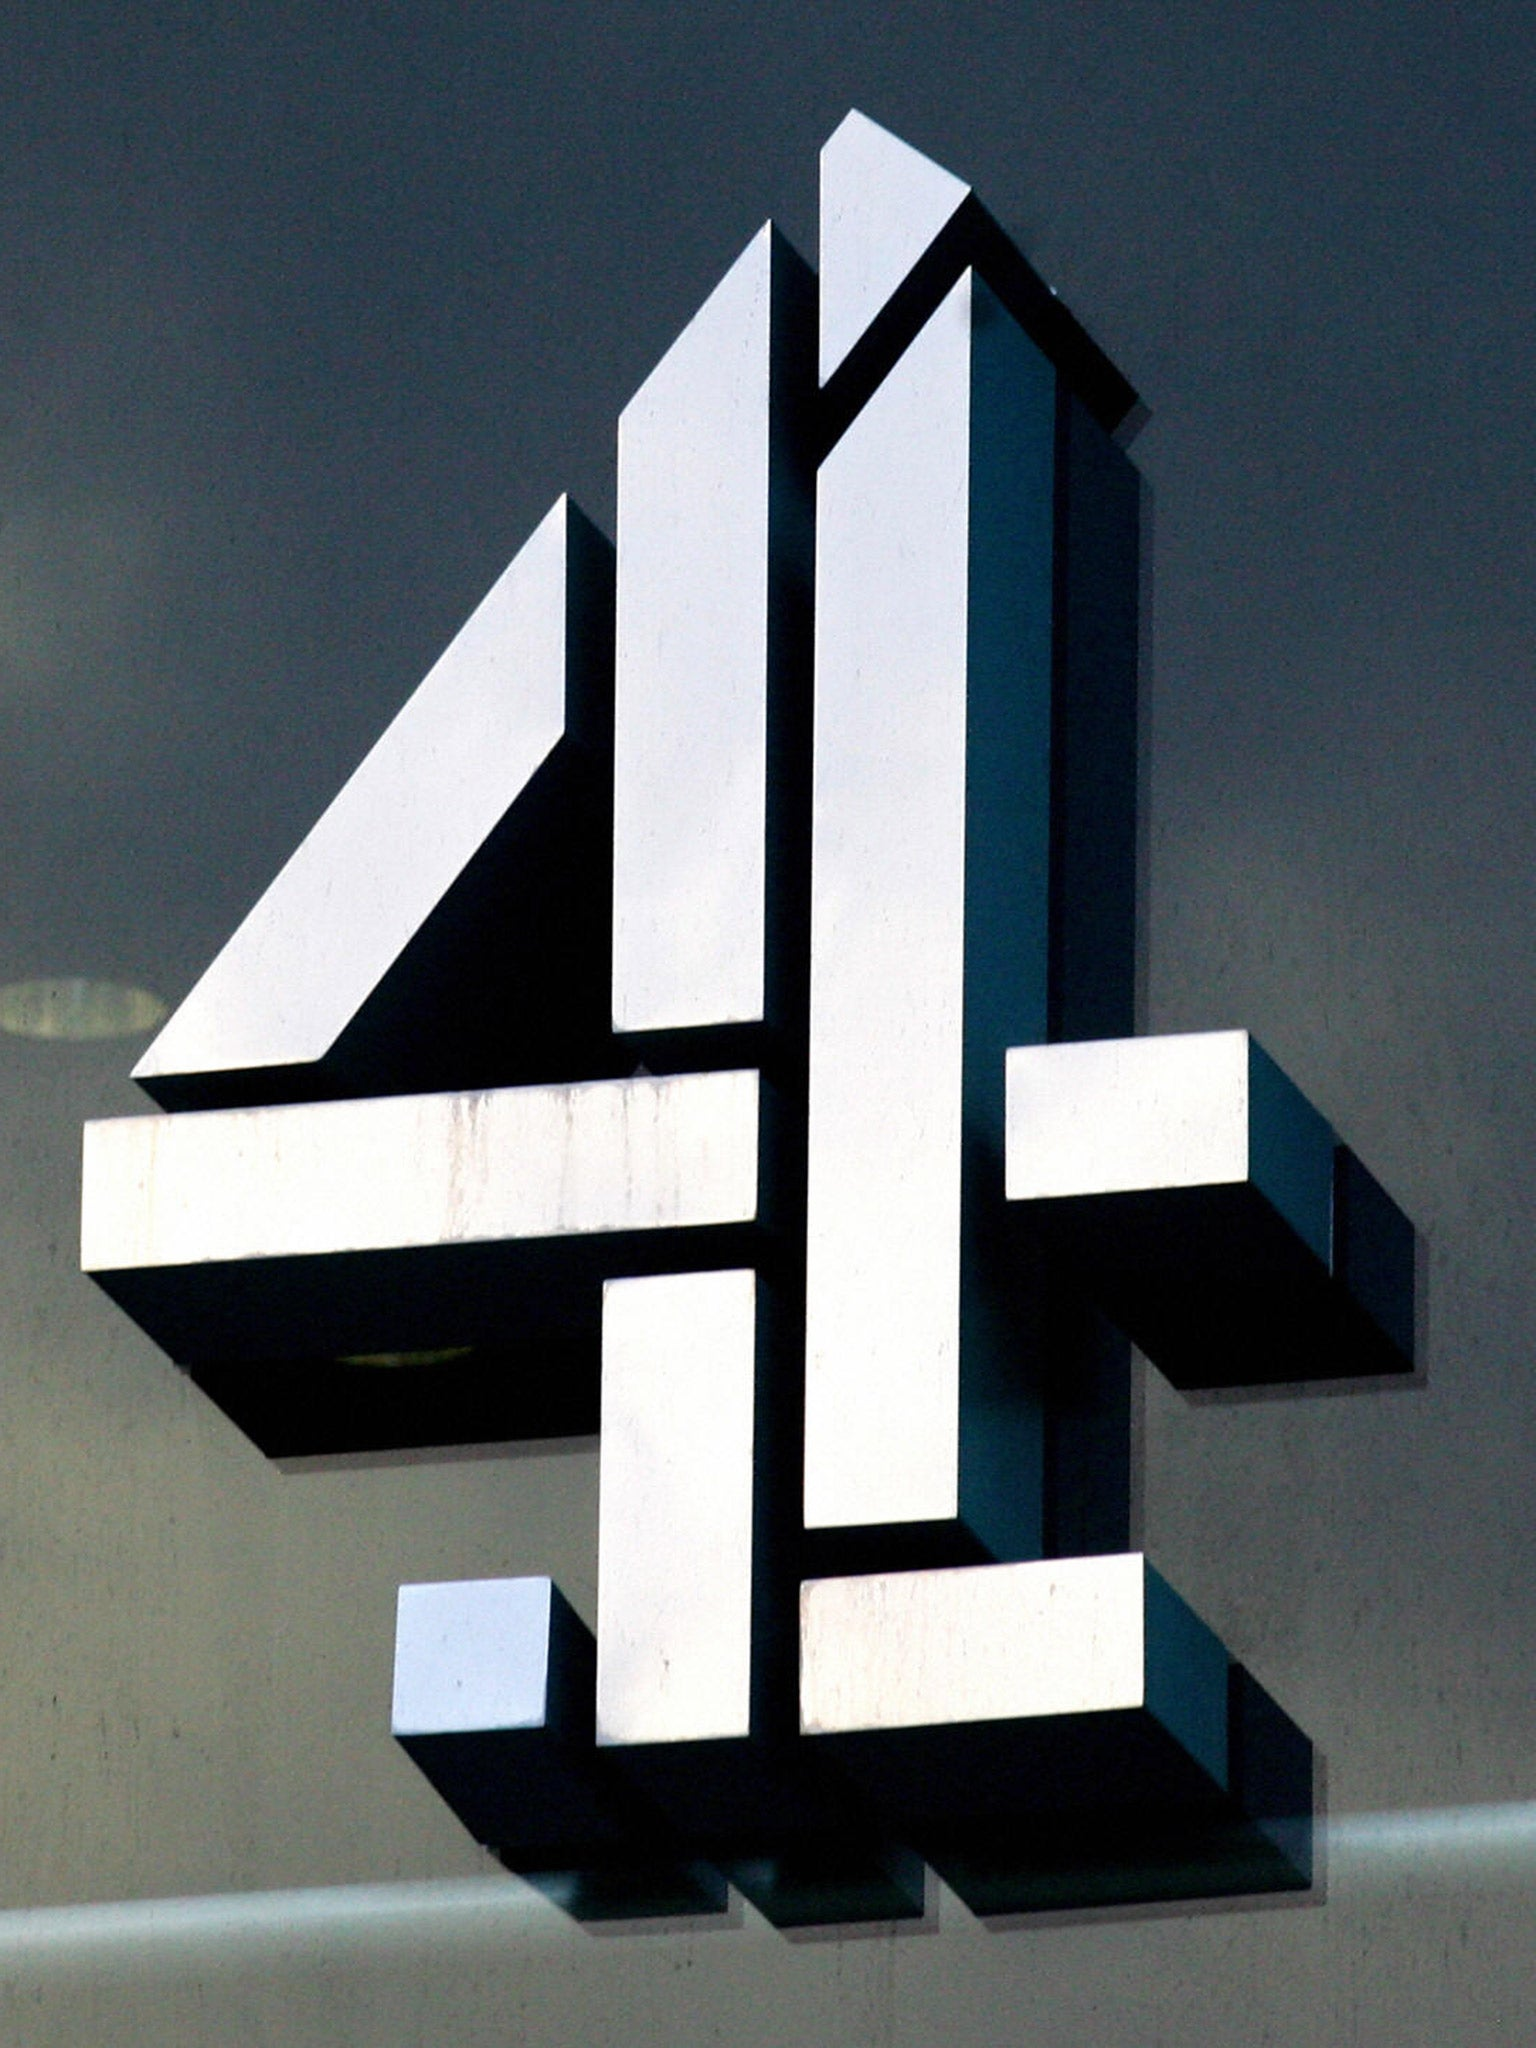 Channel 4's ...